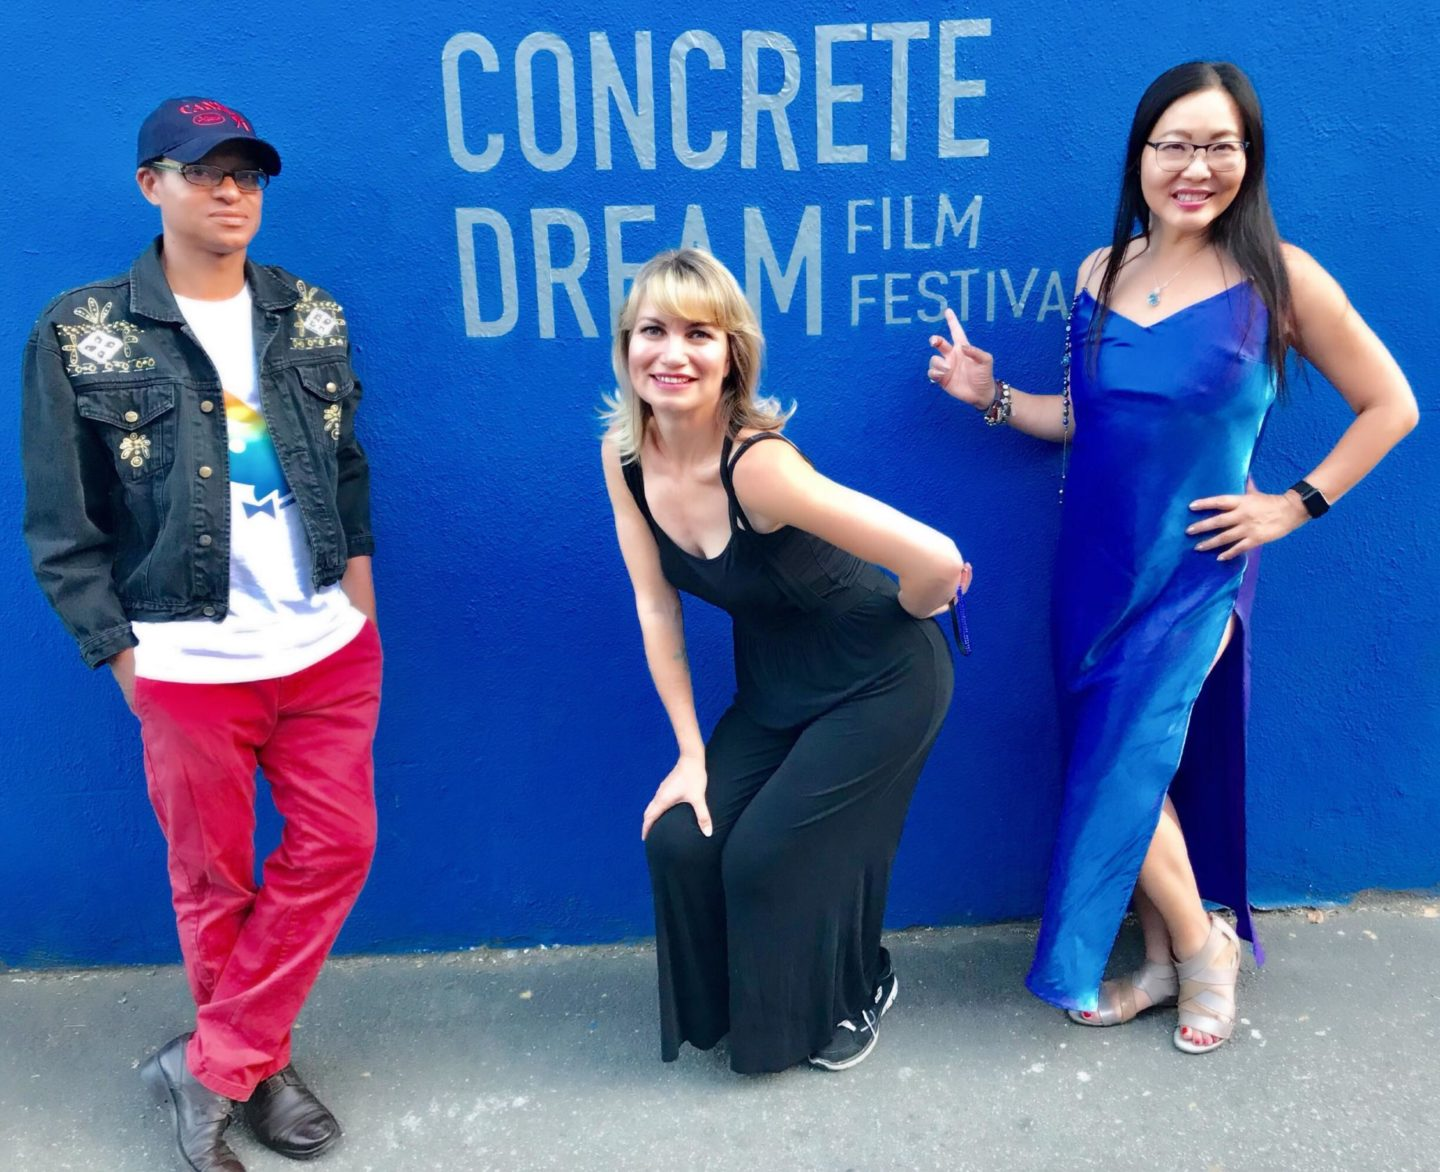 Cannes' Marché du Film Selections Debut in LA as Part of Inaugural Concrete Dream Film Festival